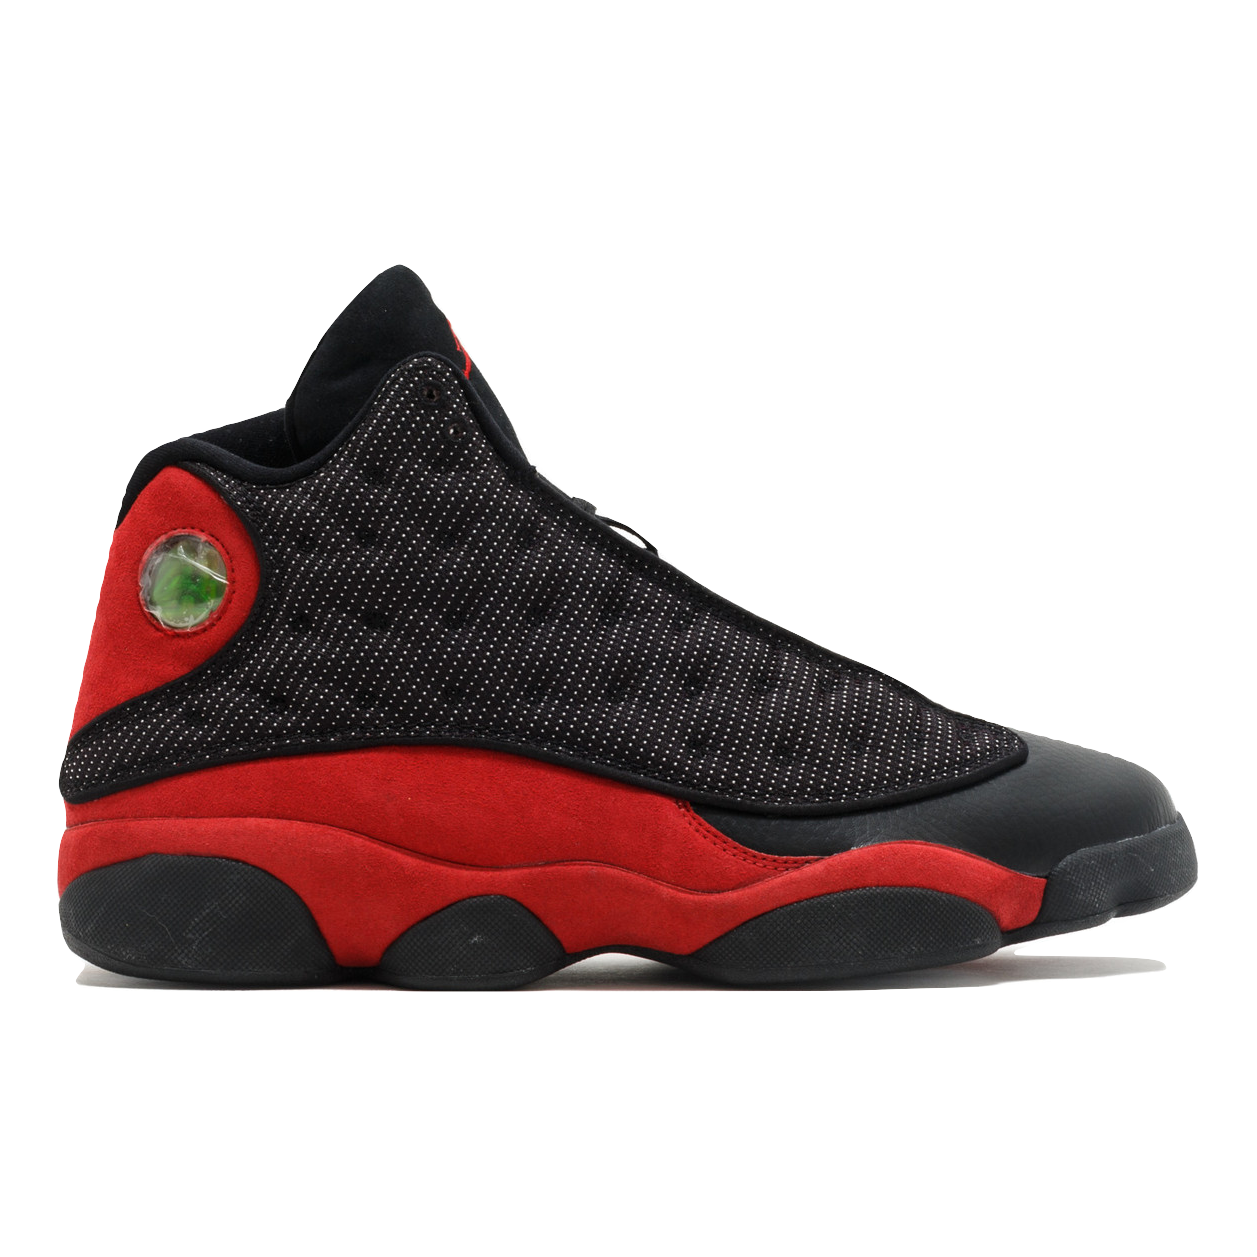 Air Jordan 13 Retro - Bred (2013) - Used